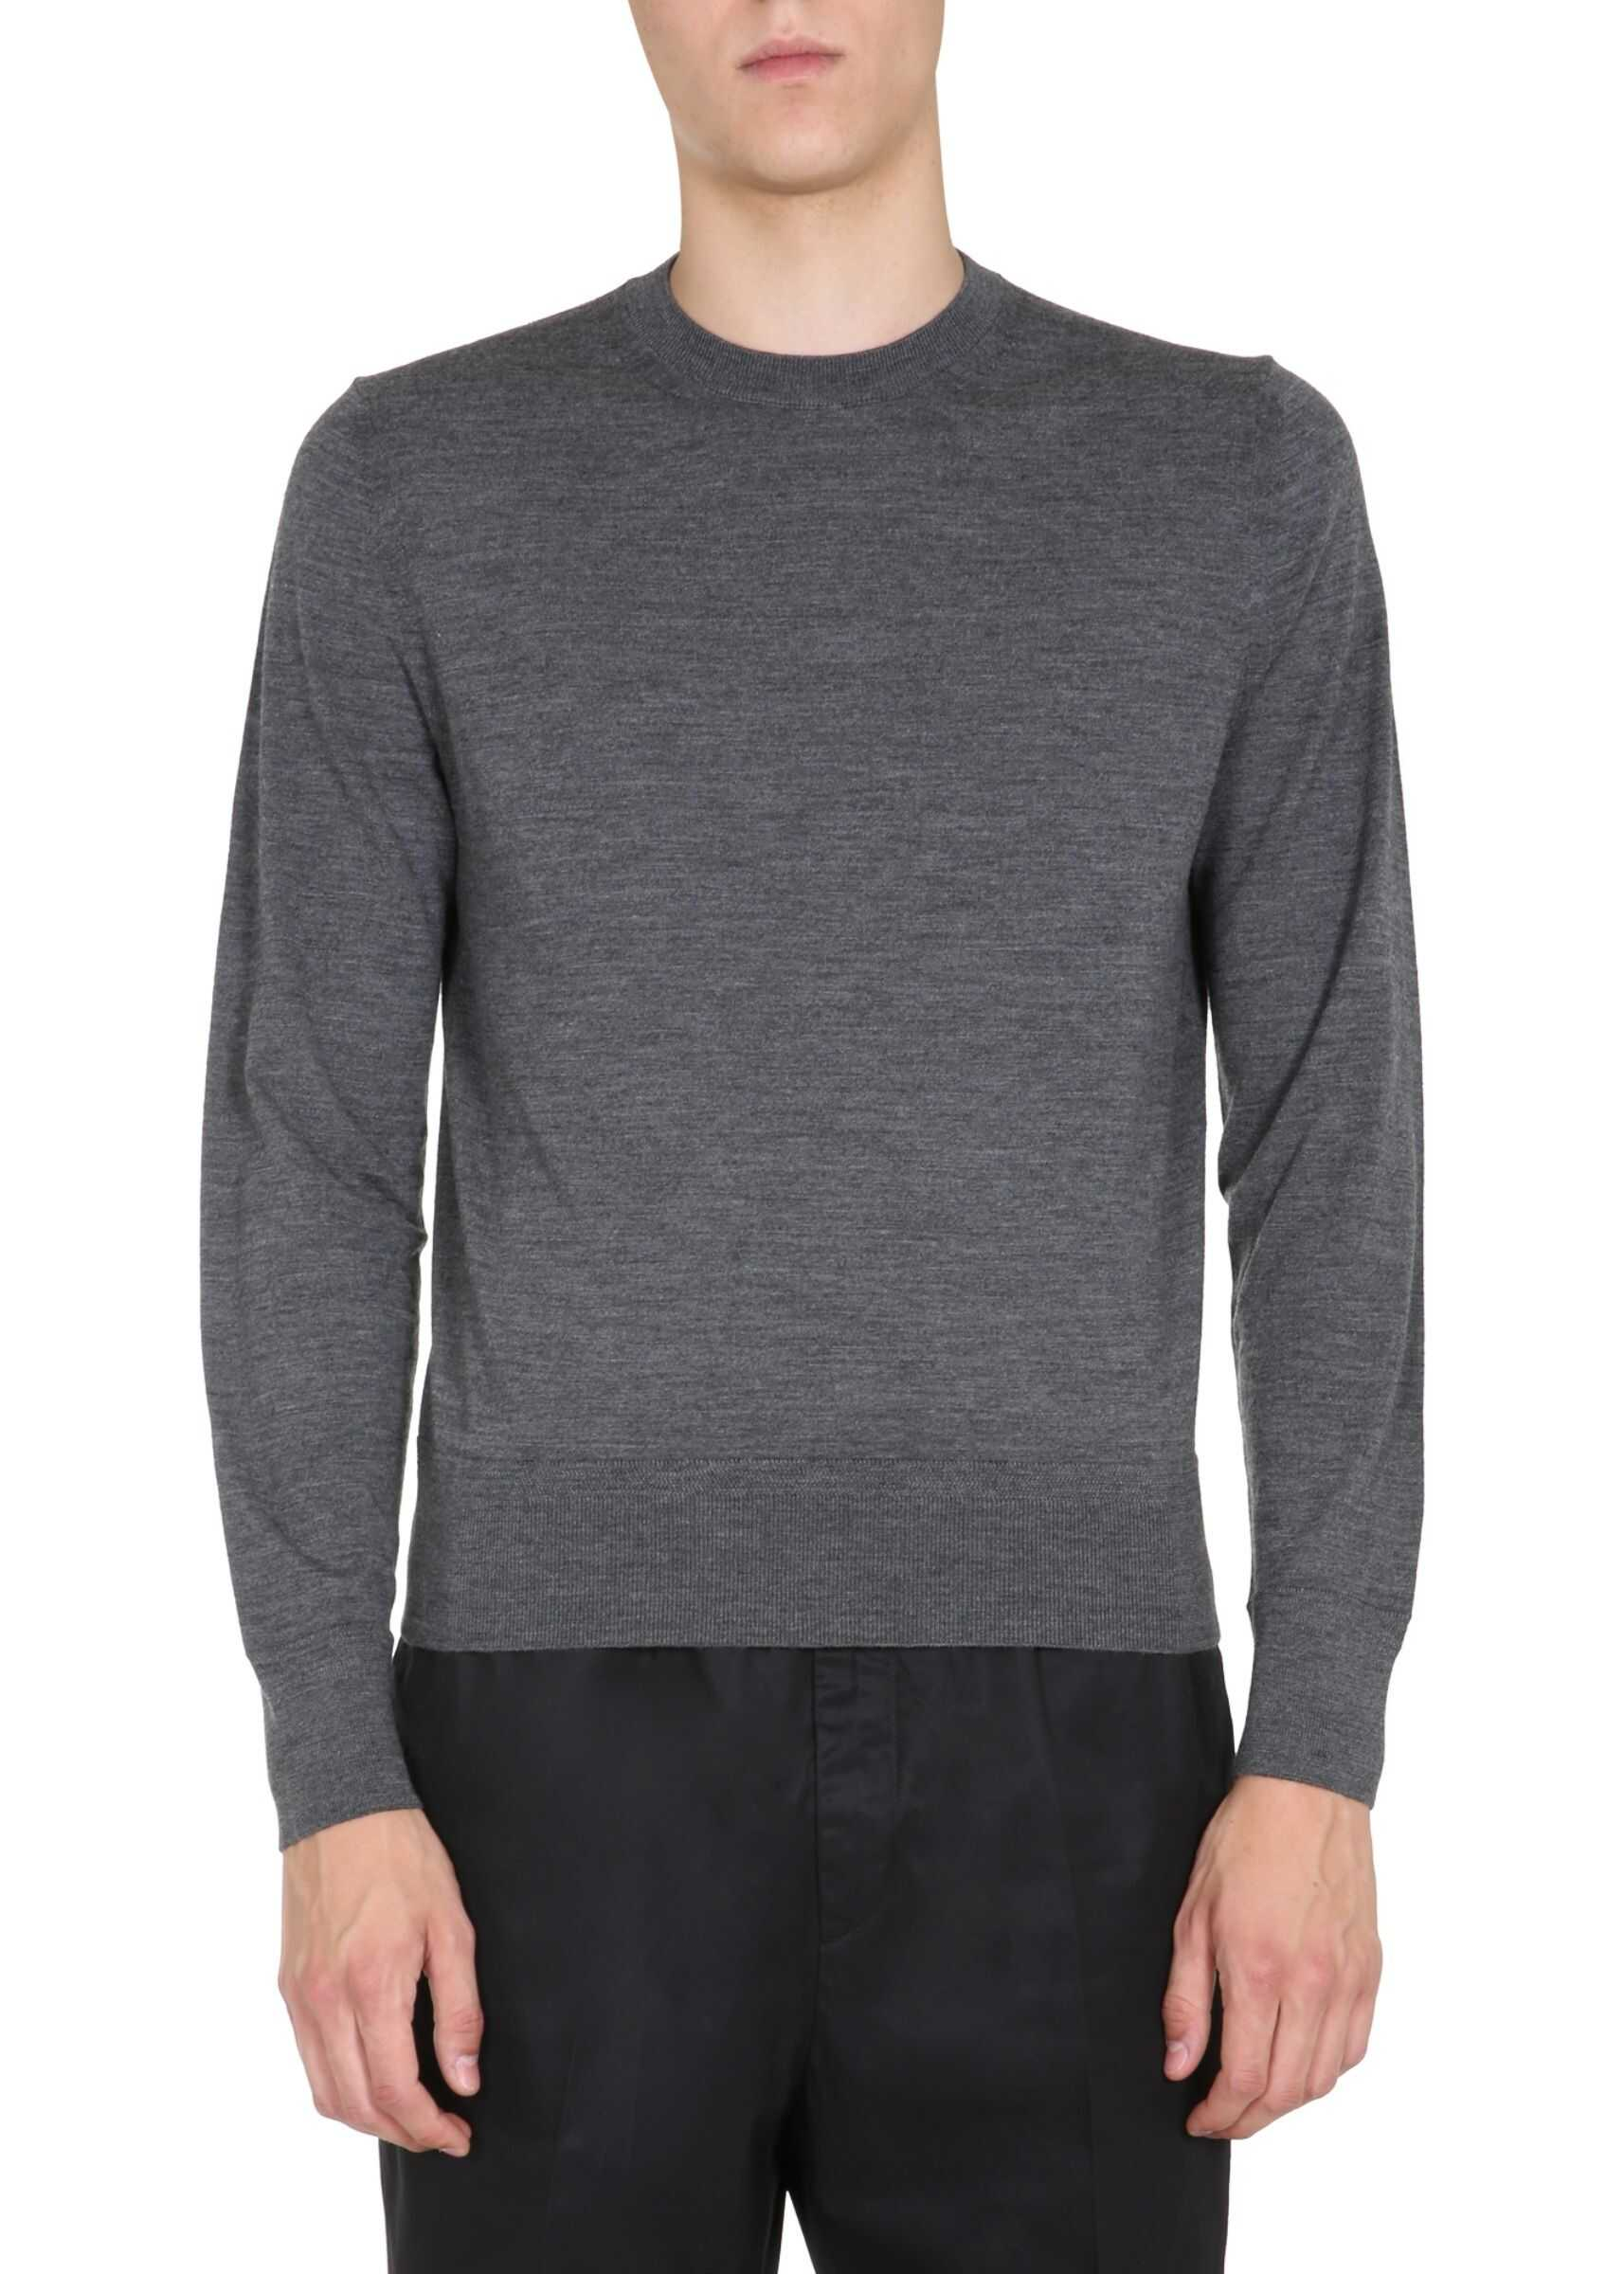 Tom Ford Crew Neck Sweater CHARCOAL imagine